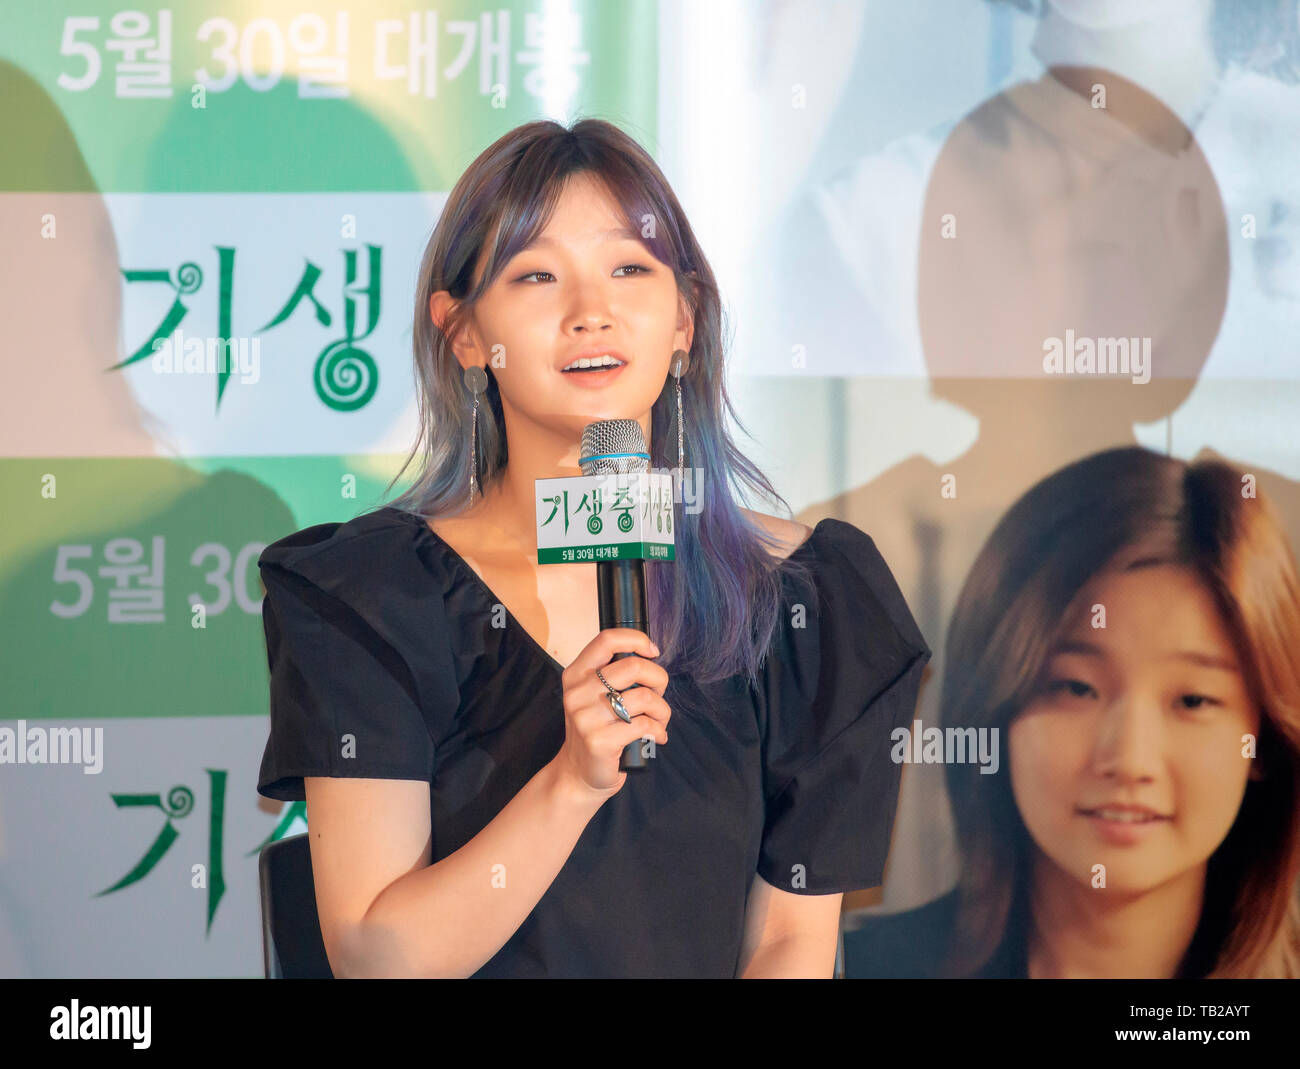 Park So-Dam, May 28, 2019 : South Korean actress Park So-Dam